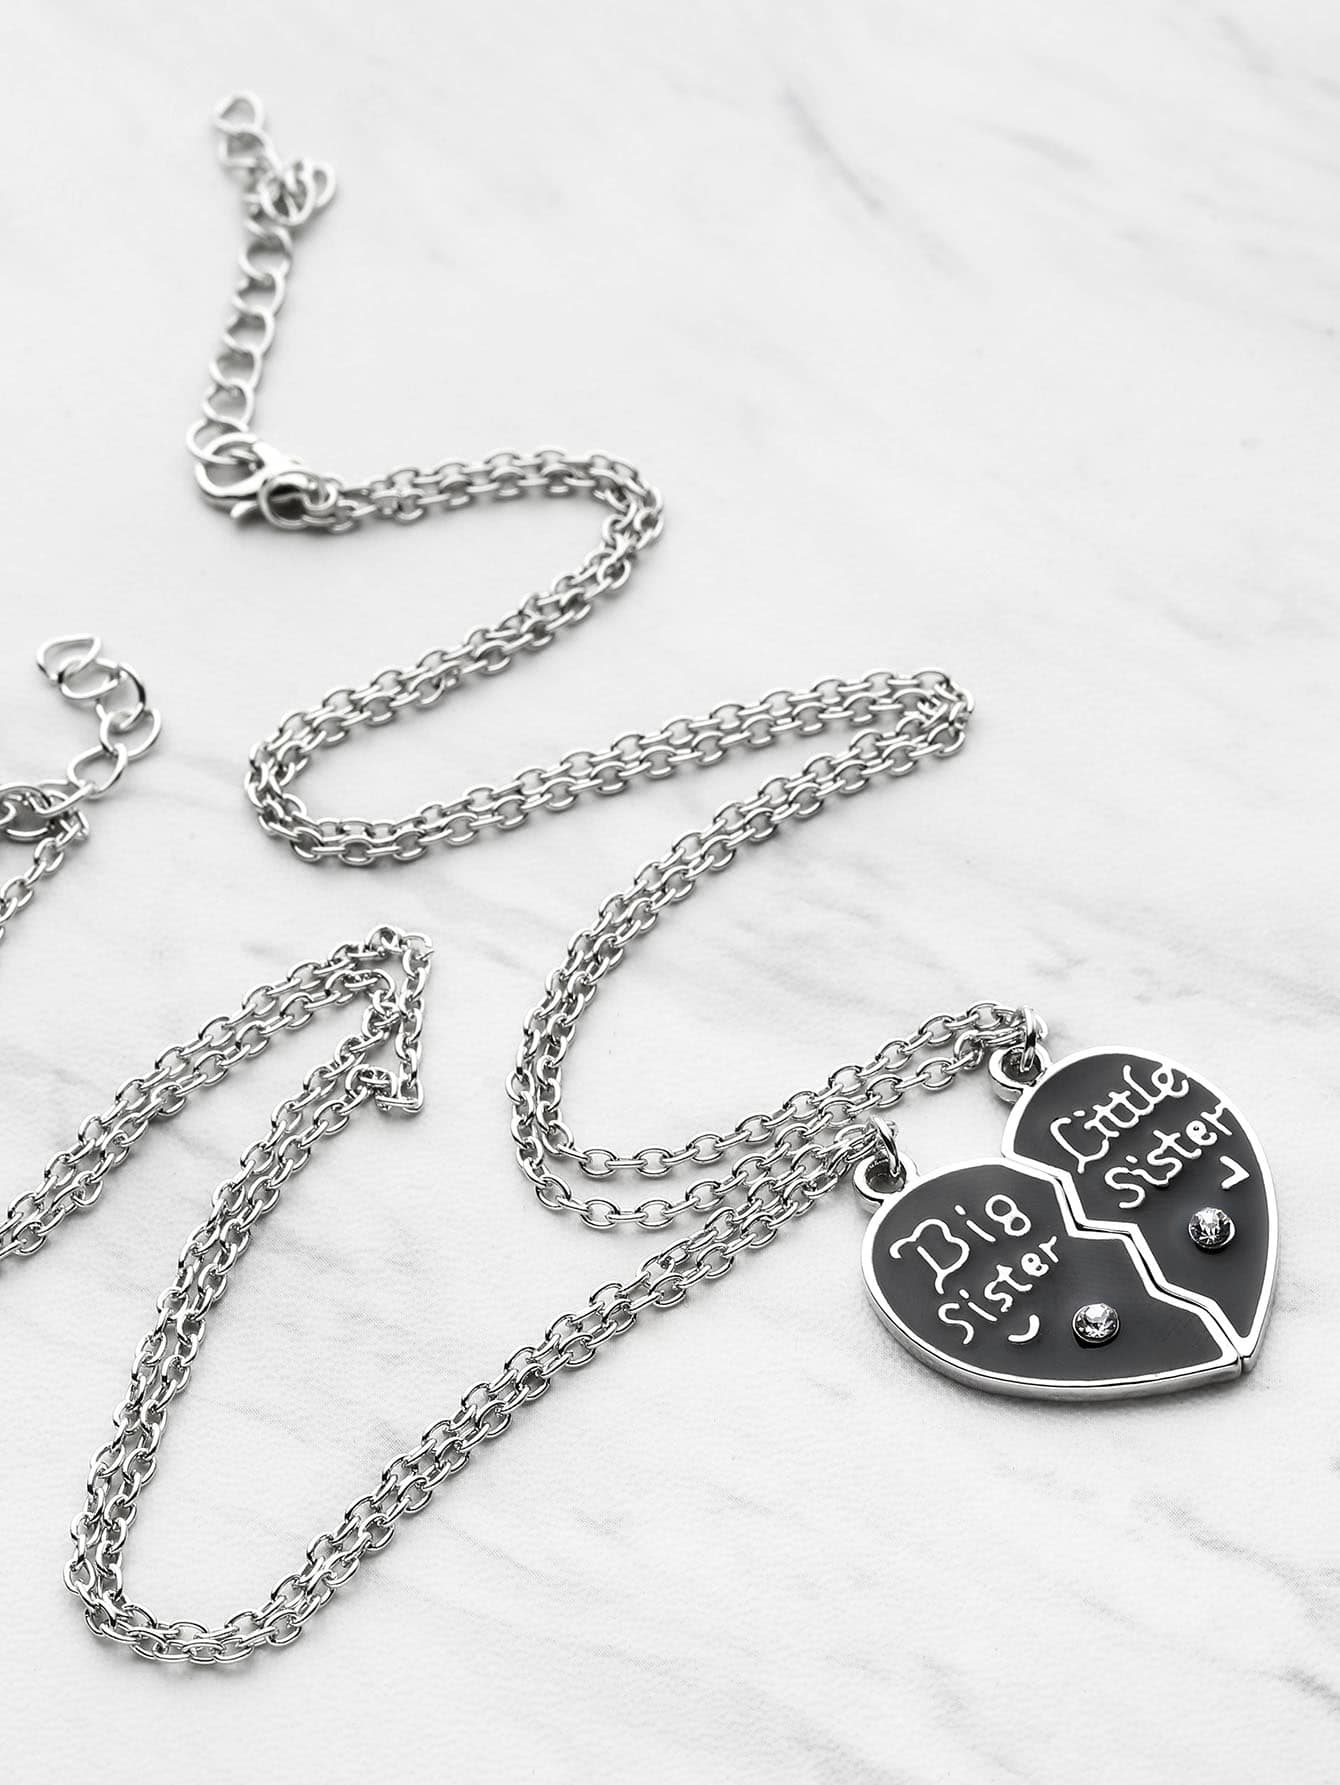 Heart Shaped Friendship Necklace  - 2pcs